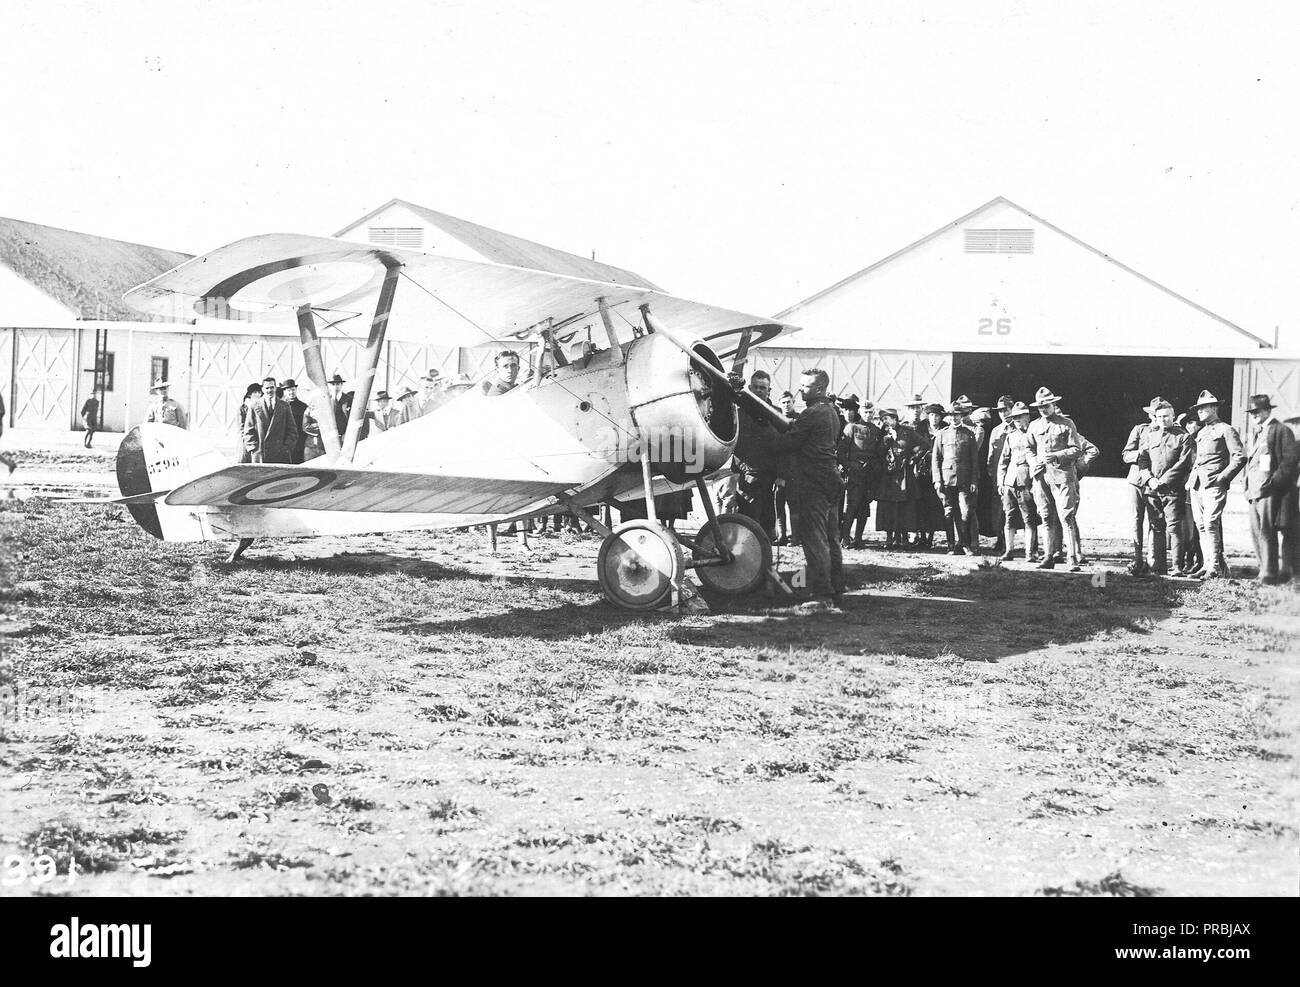 September 1918 - A French type, Nieuport 27, used at Mineola, L.I. in instructing cadets difficult air stunts - Stock Image